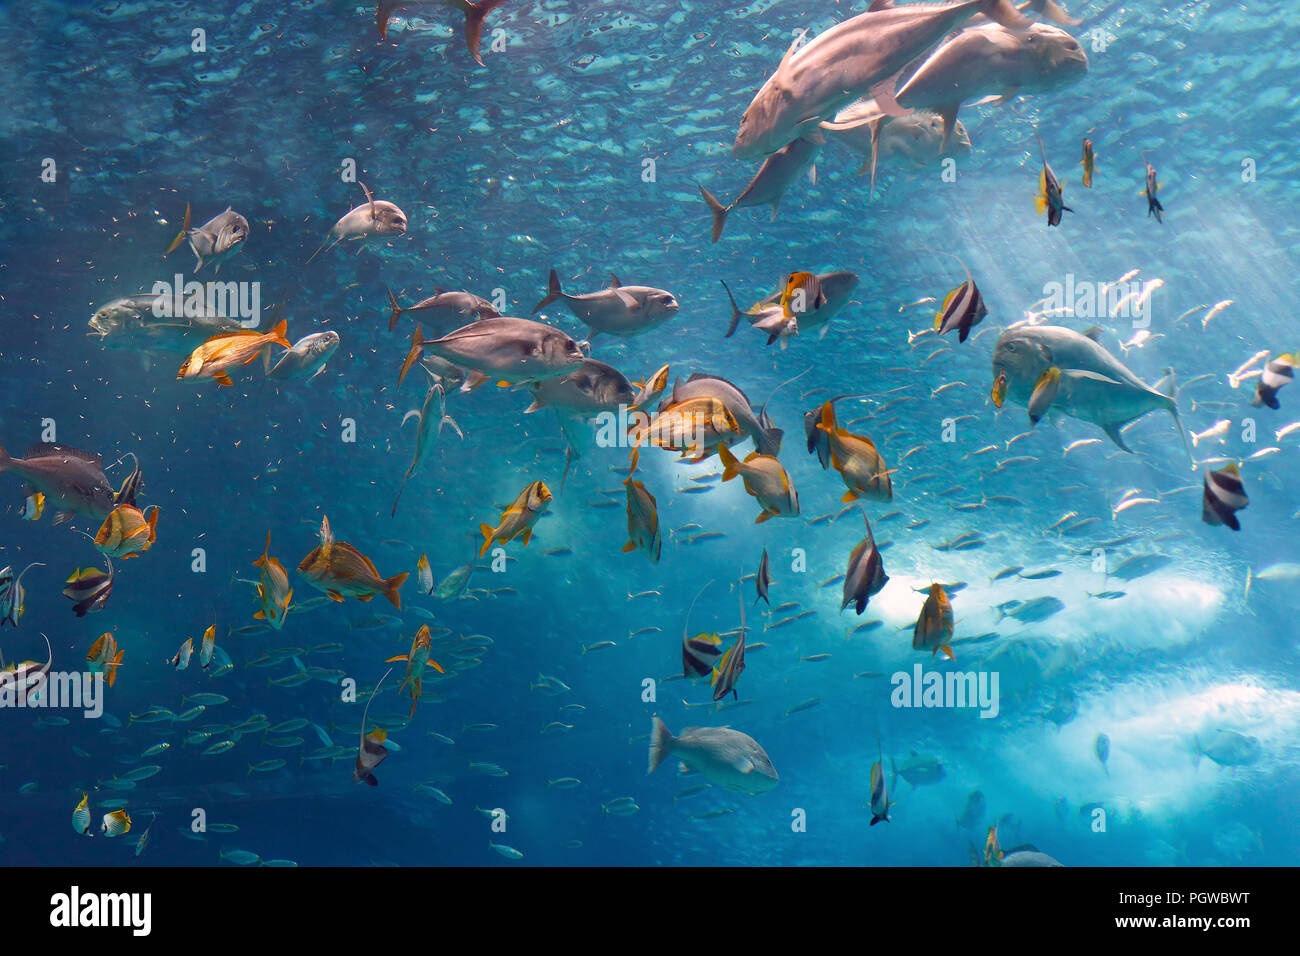 Lisbon, Portugal - March 3, 2014: Colorful tropical fishes of the Lisbon Oceanarium during nourishment Stock Photo